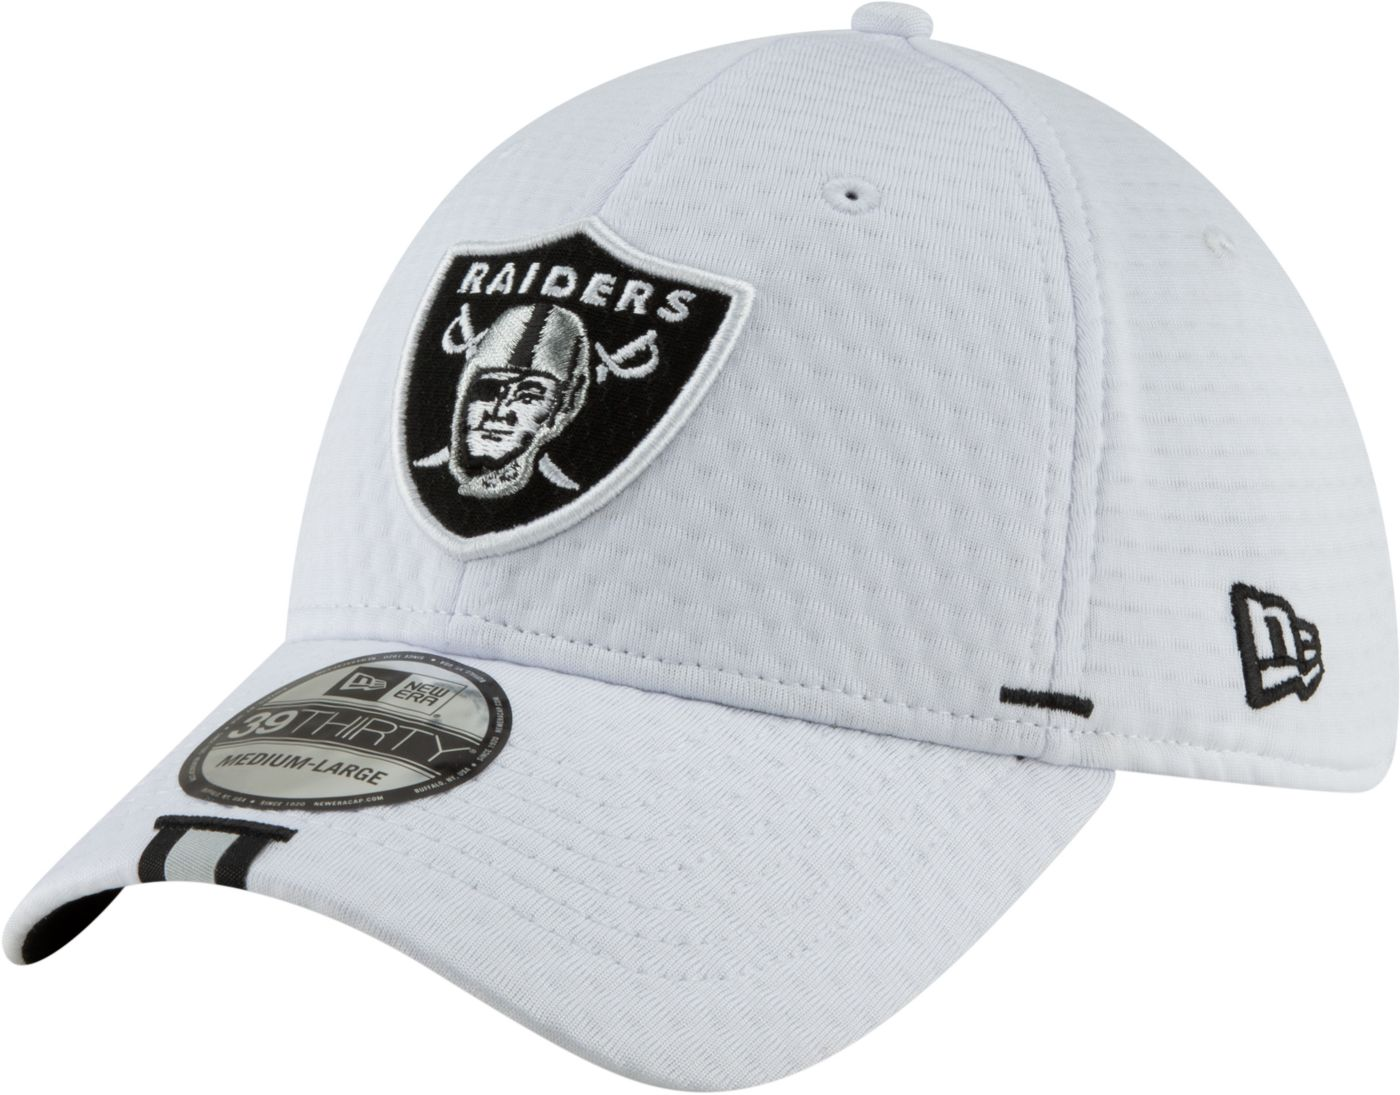 New Era Men's Oakland Raiders Sideline Training Camp 39Thirty Stretch Fit White Hat